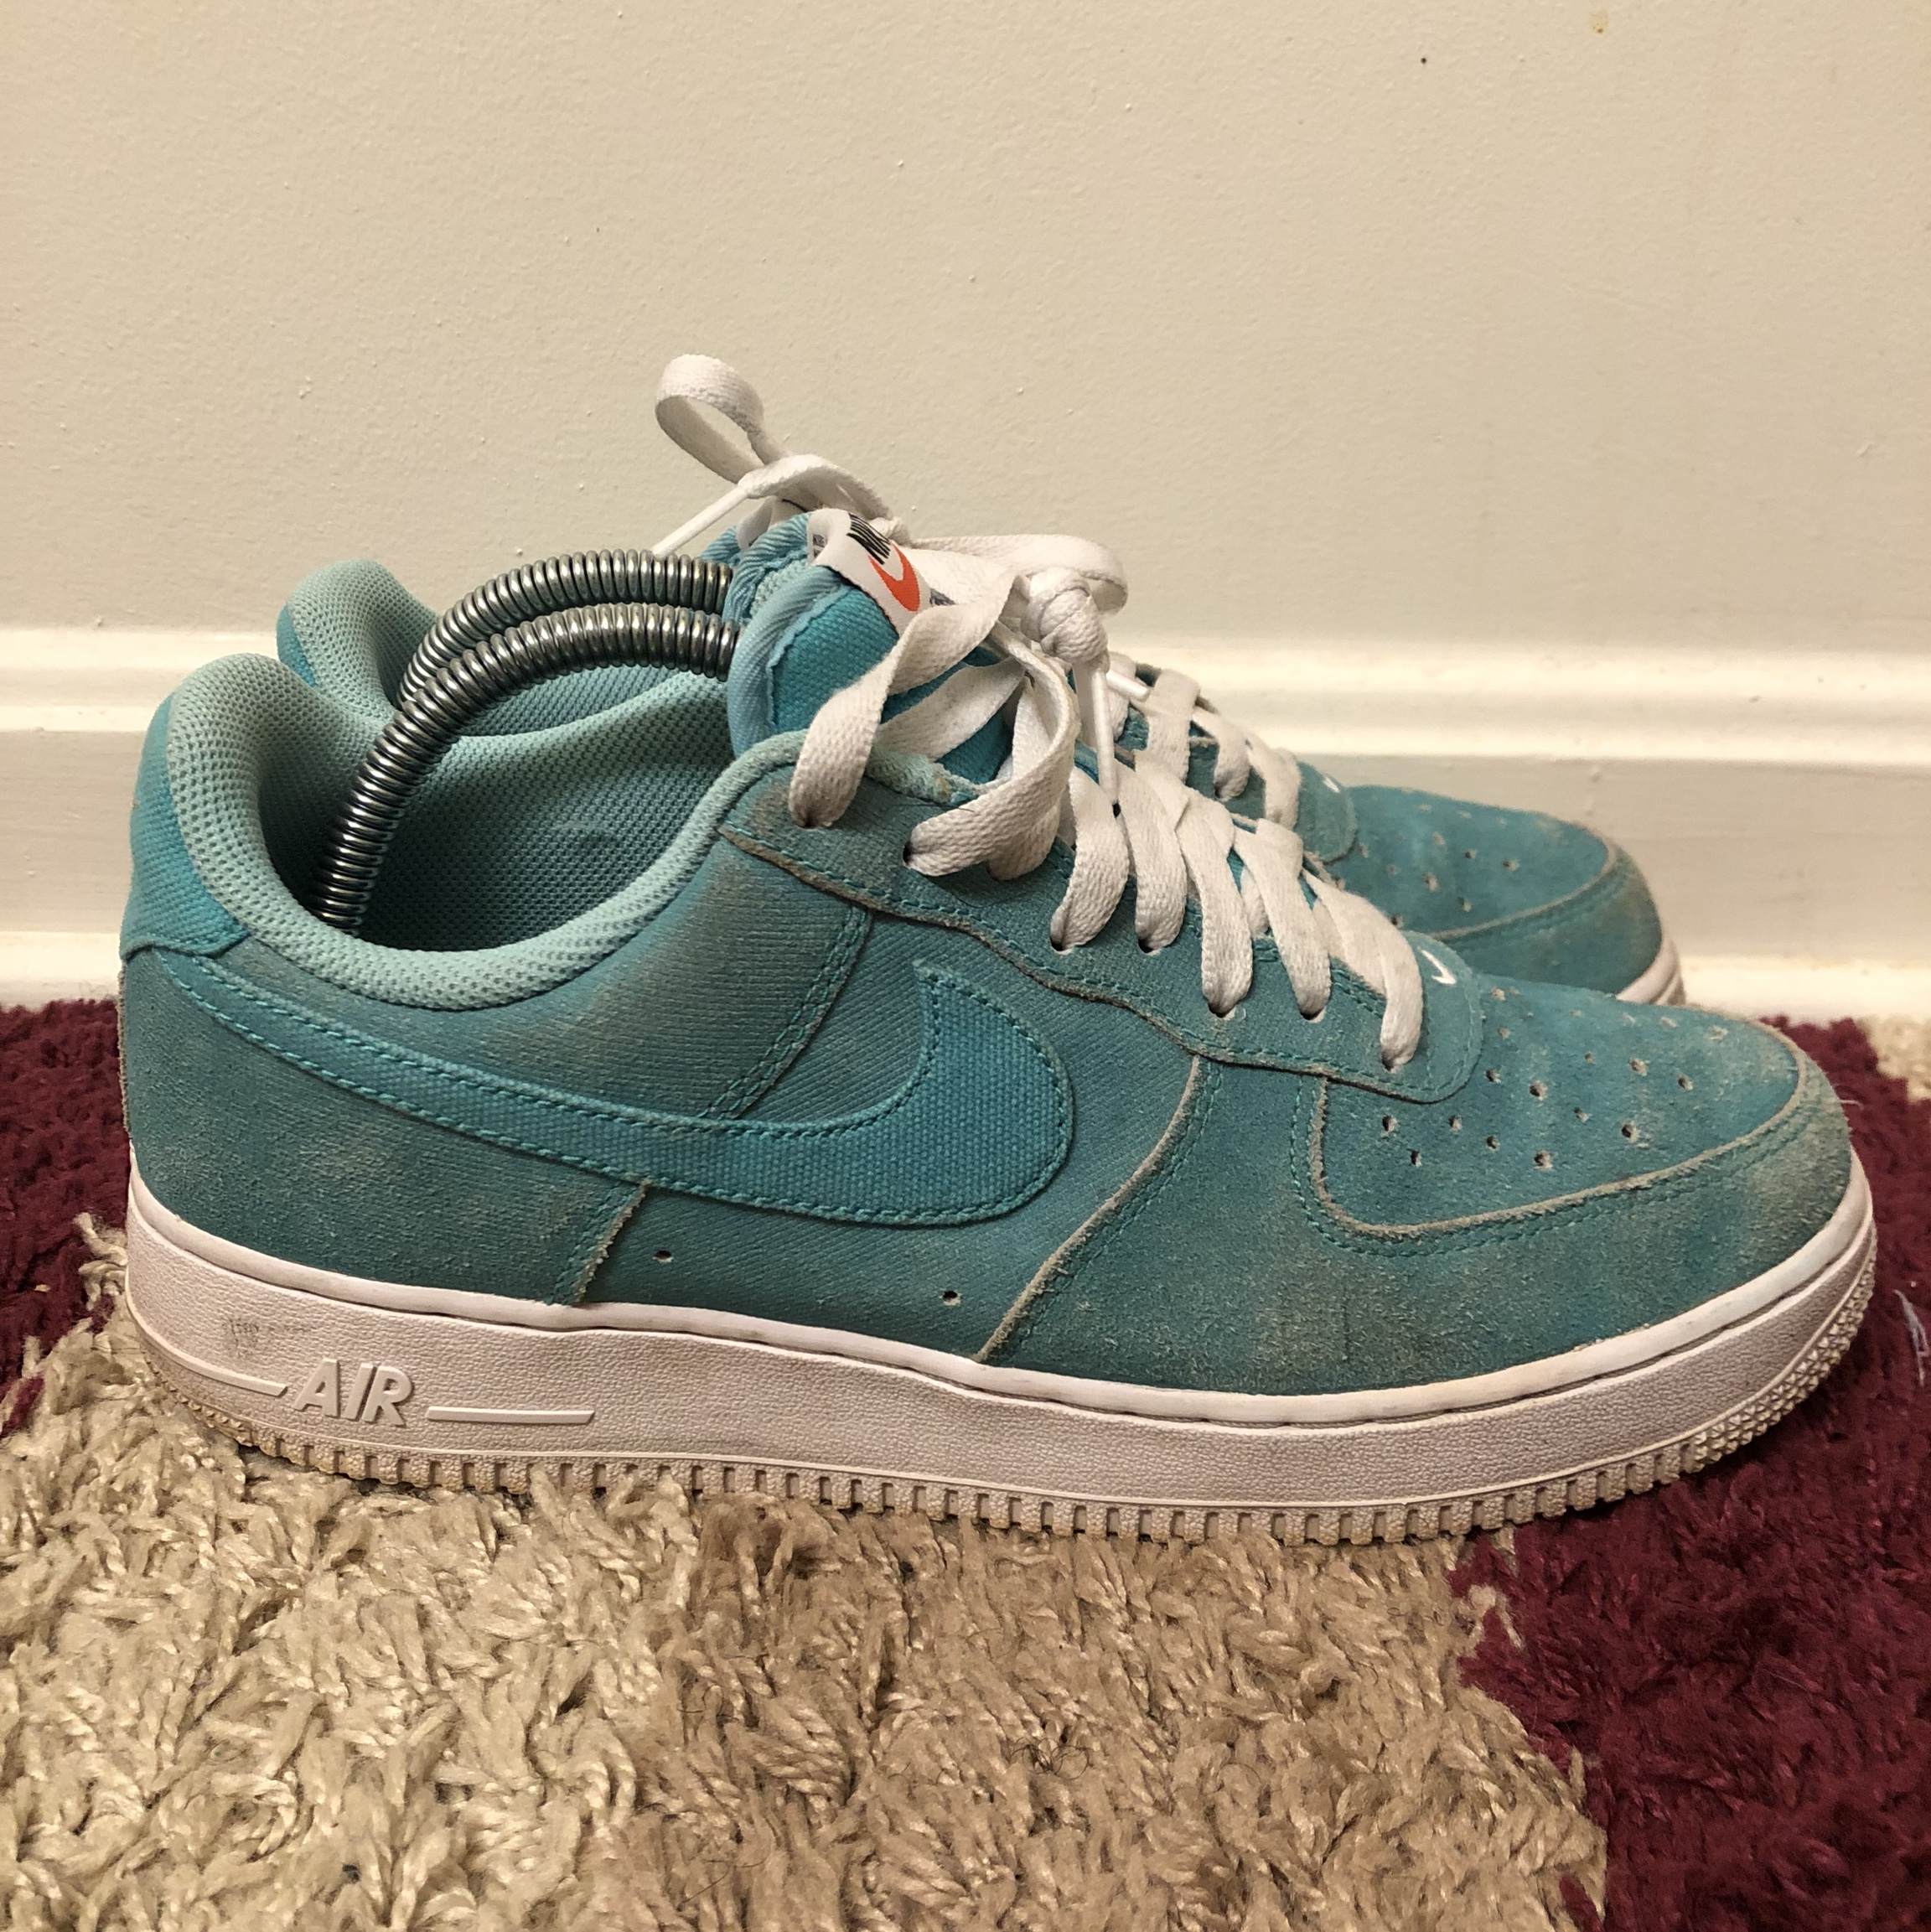 Blue Aqua 1 Size Force 8 Club Air Nike Depop Low Yacht POXikZuT